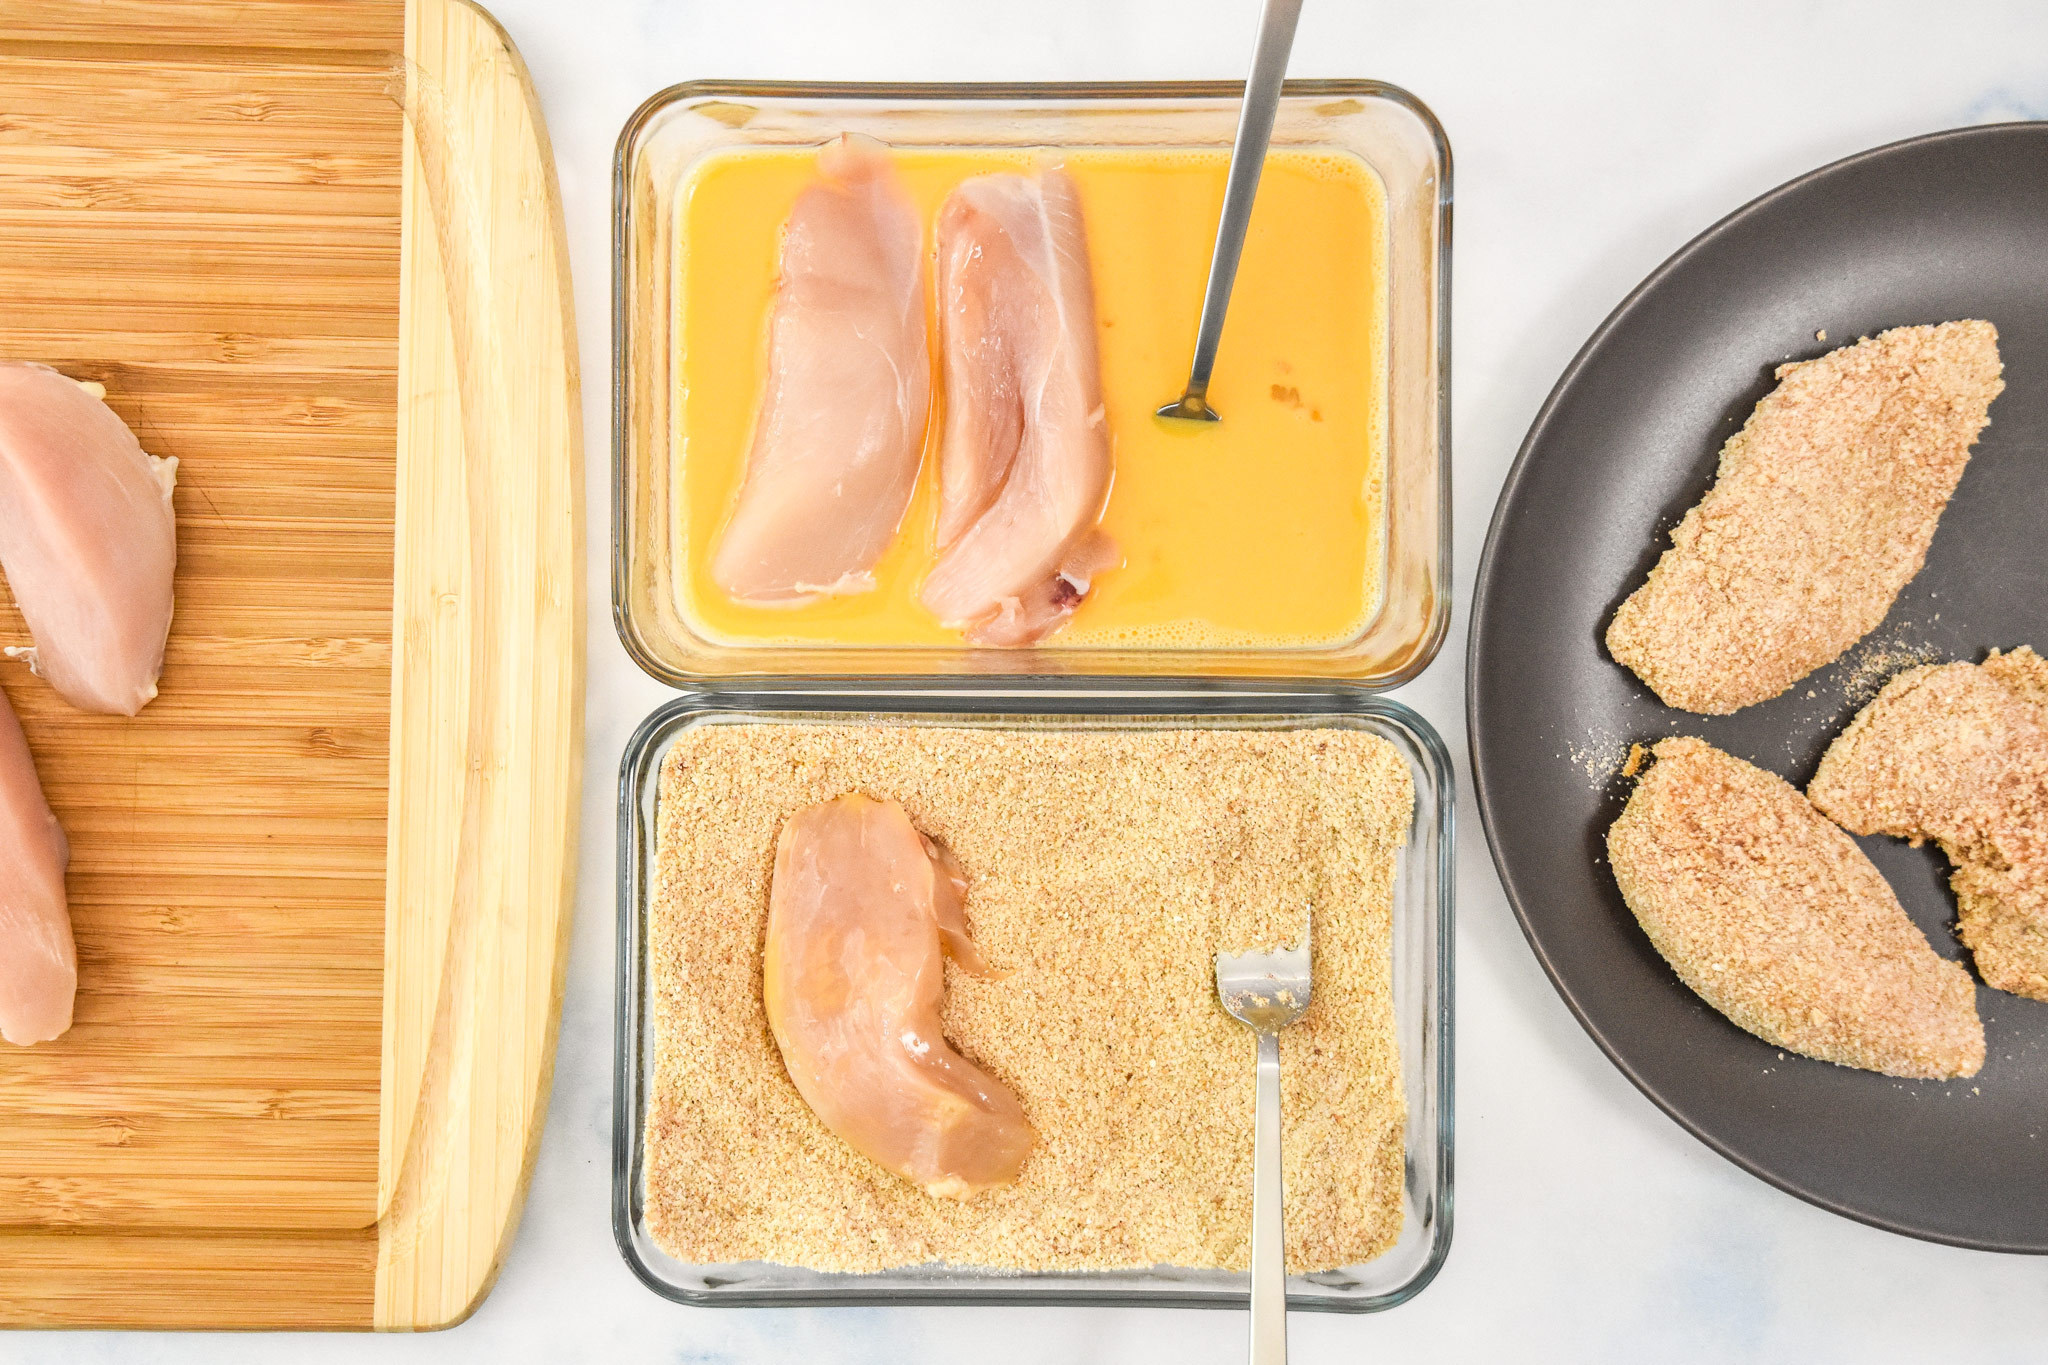 the breading station with an egg bowl and a bread crumb mixture bowl.